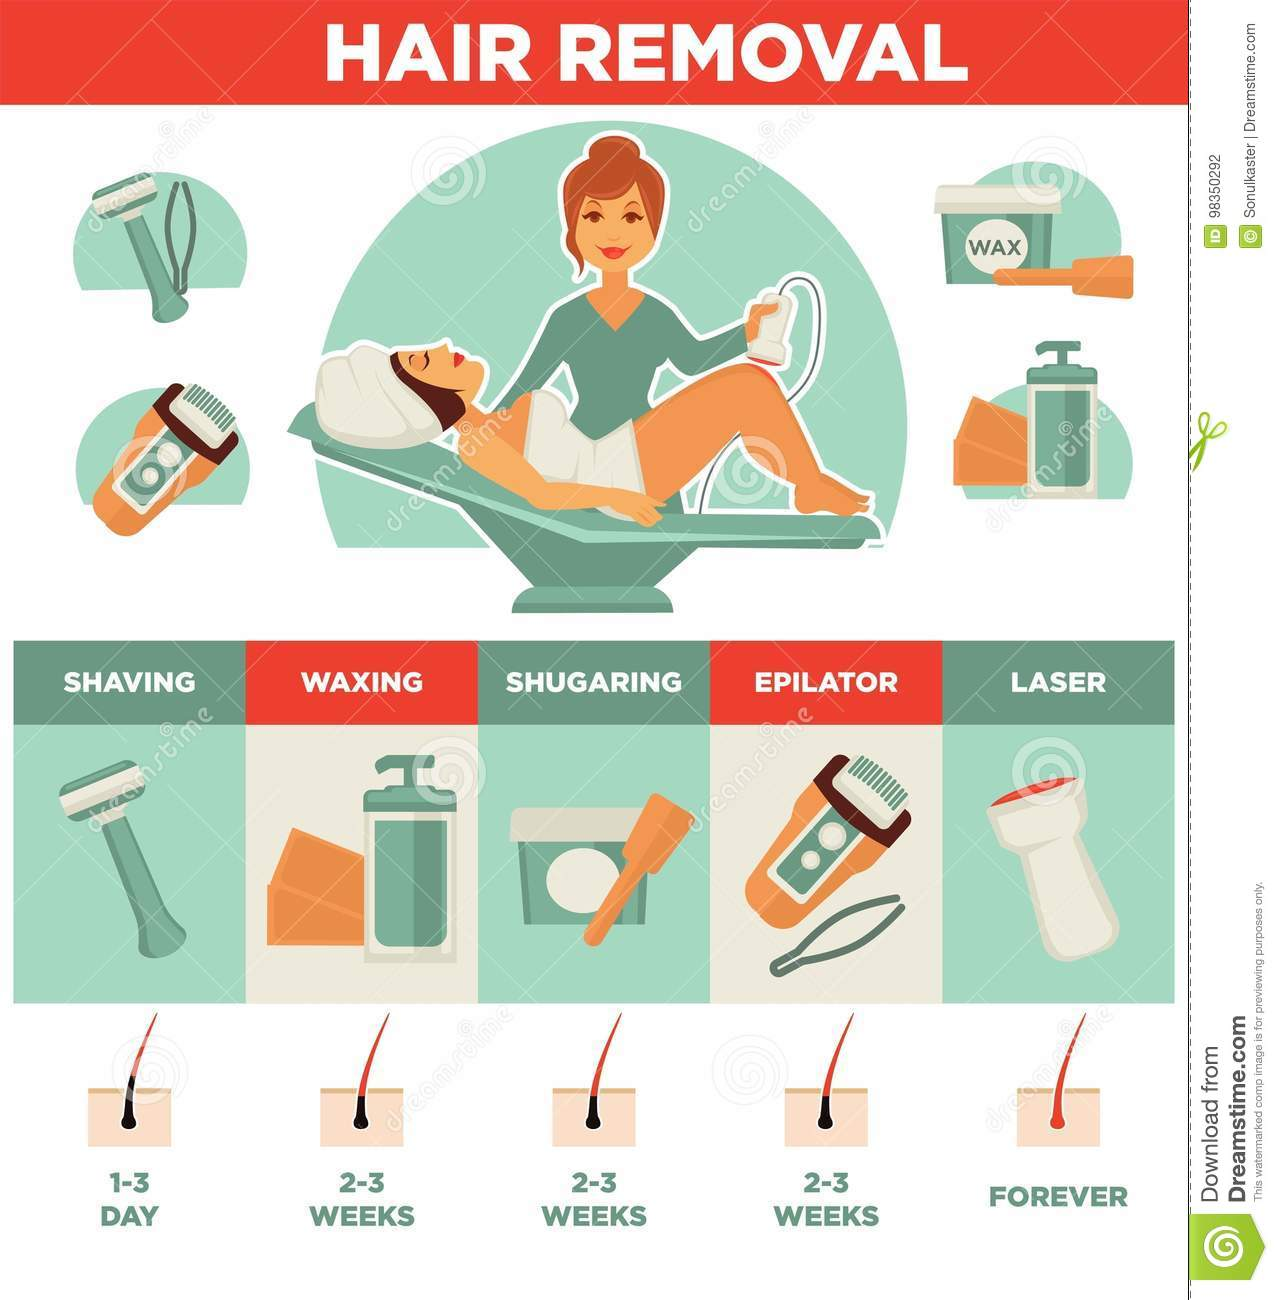 What is better - shugaring or waxing hair removal Shugaring in the salon. Wax strips